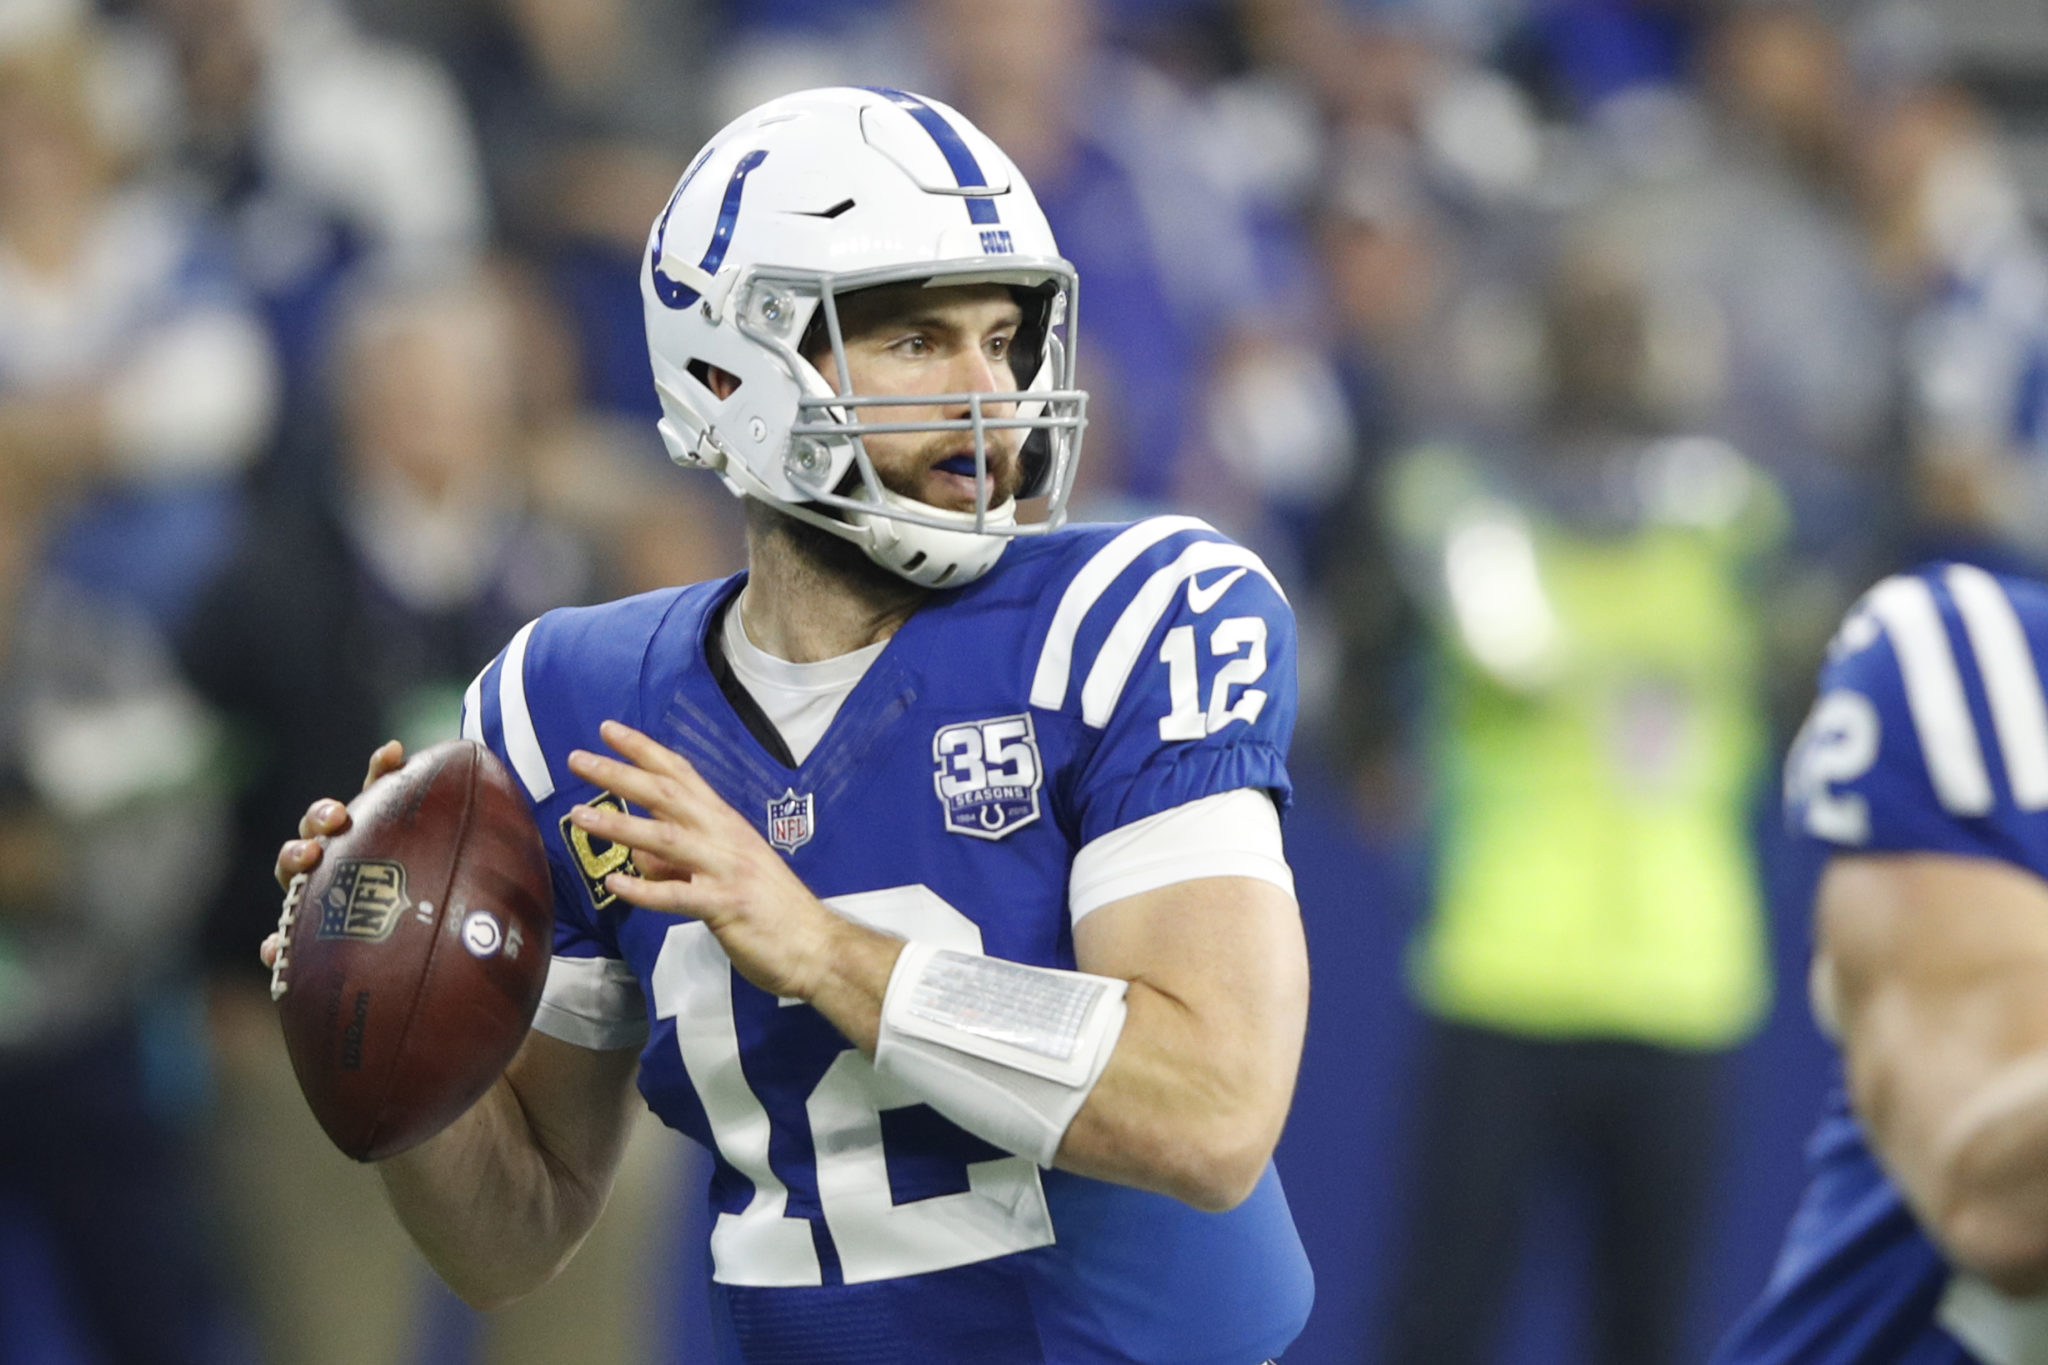 """Andrew Luck - Andrew Luck is retiring from the NFL after being """"mentally worn down"""".-Adam Schefter"""